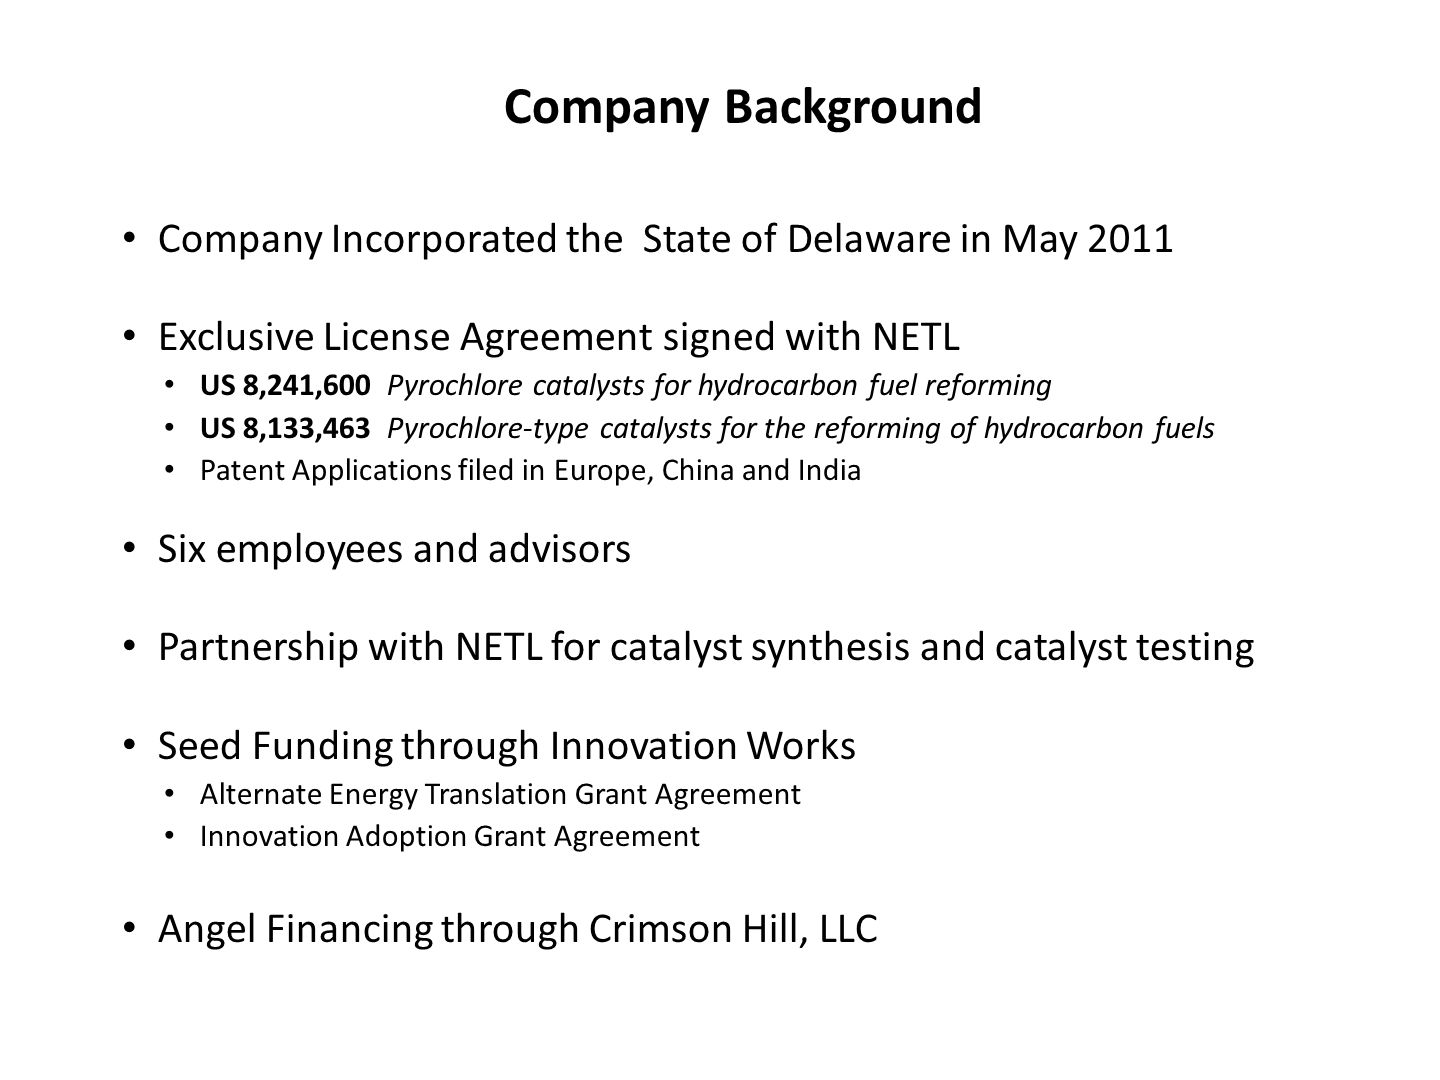 Company Incorporated the State of Delaware in May 2011 Exclusive License Agreement signed with NETL US 8,241,600 Pyrochlore catalysts for hydrocarbon fuel reforming US 8,133,463 Pyrochlore-type catalysts for the reforming of hydrocarbon fuels Patent Applications filed in Europe, China and India Six employees and advisors Partnership with NETL for catalyst synthesis and catalyst testing Seed Funding through Innovation Works Alternate Energy Translation Grant Agreement Innovation Adoption Grant Agreement Angel Financing through Crimson Hill, LLC Company Background